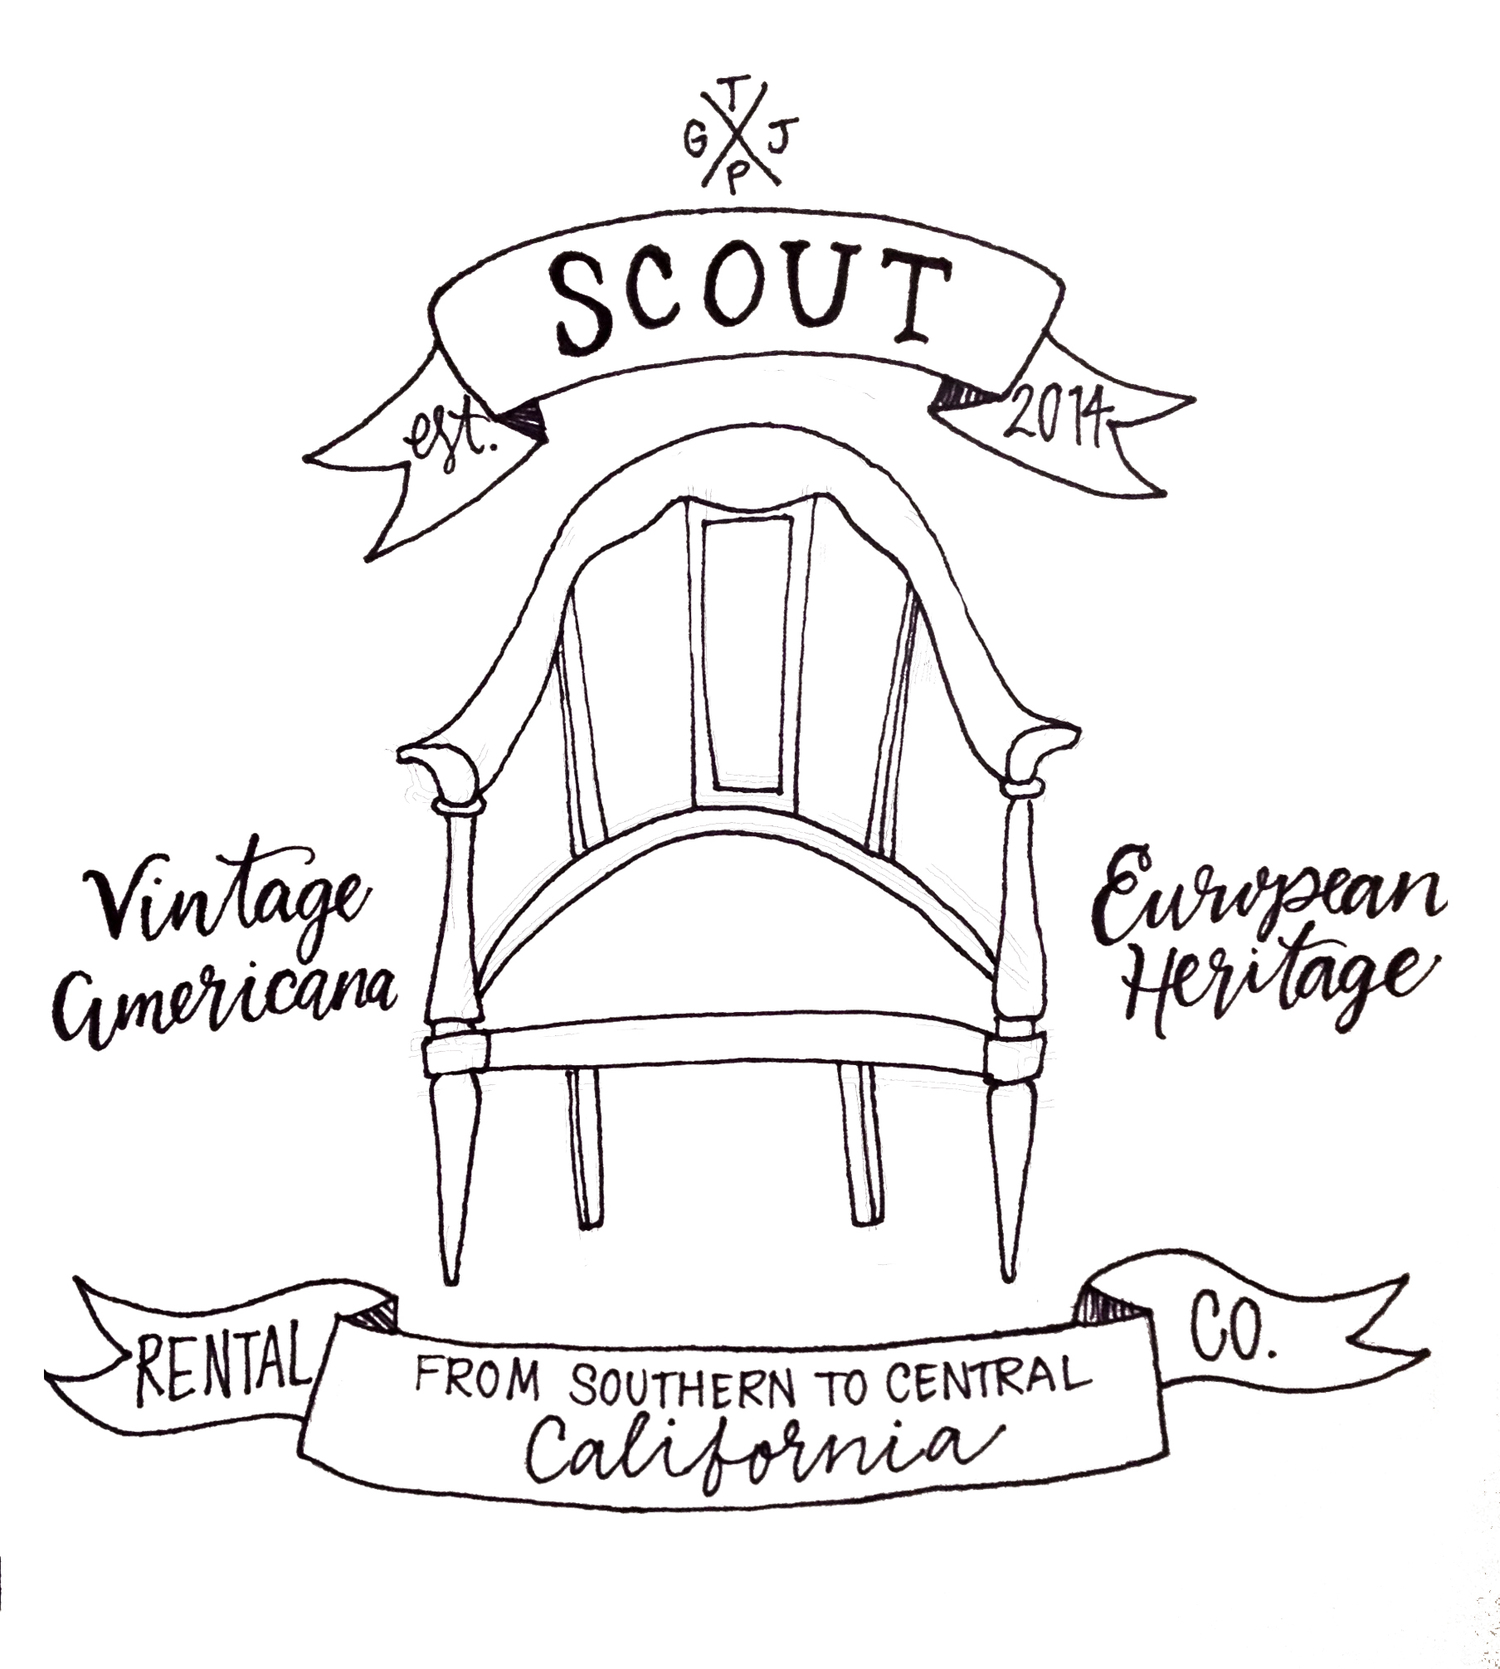 SCOUT Rental Co